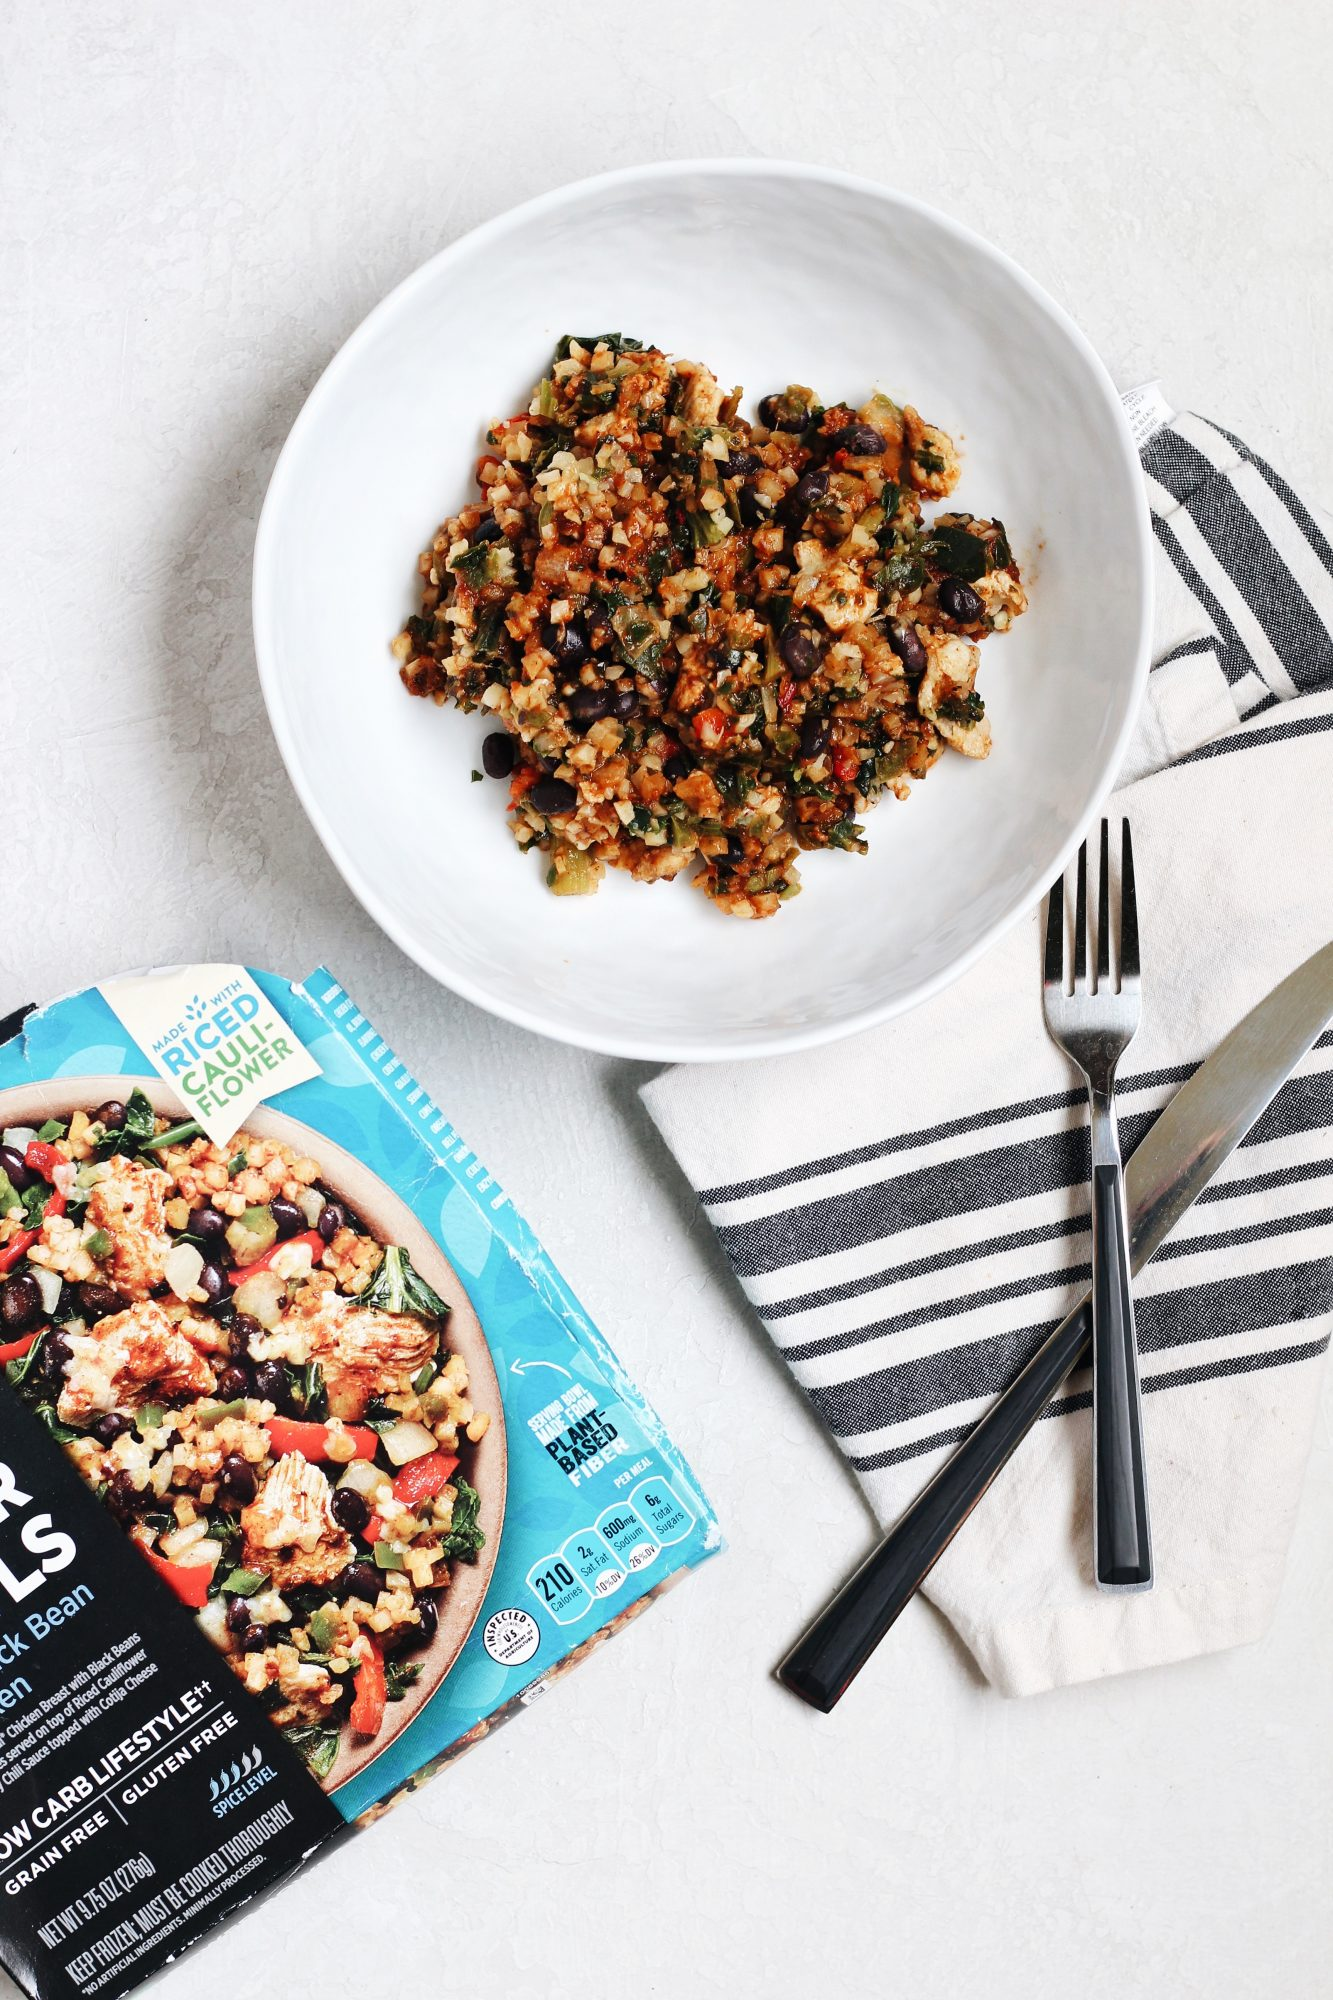 Healthy Choice Grain-Free Power Bowls make a great healthy frozen meal option